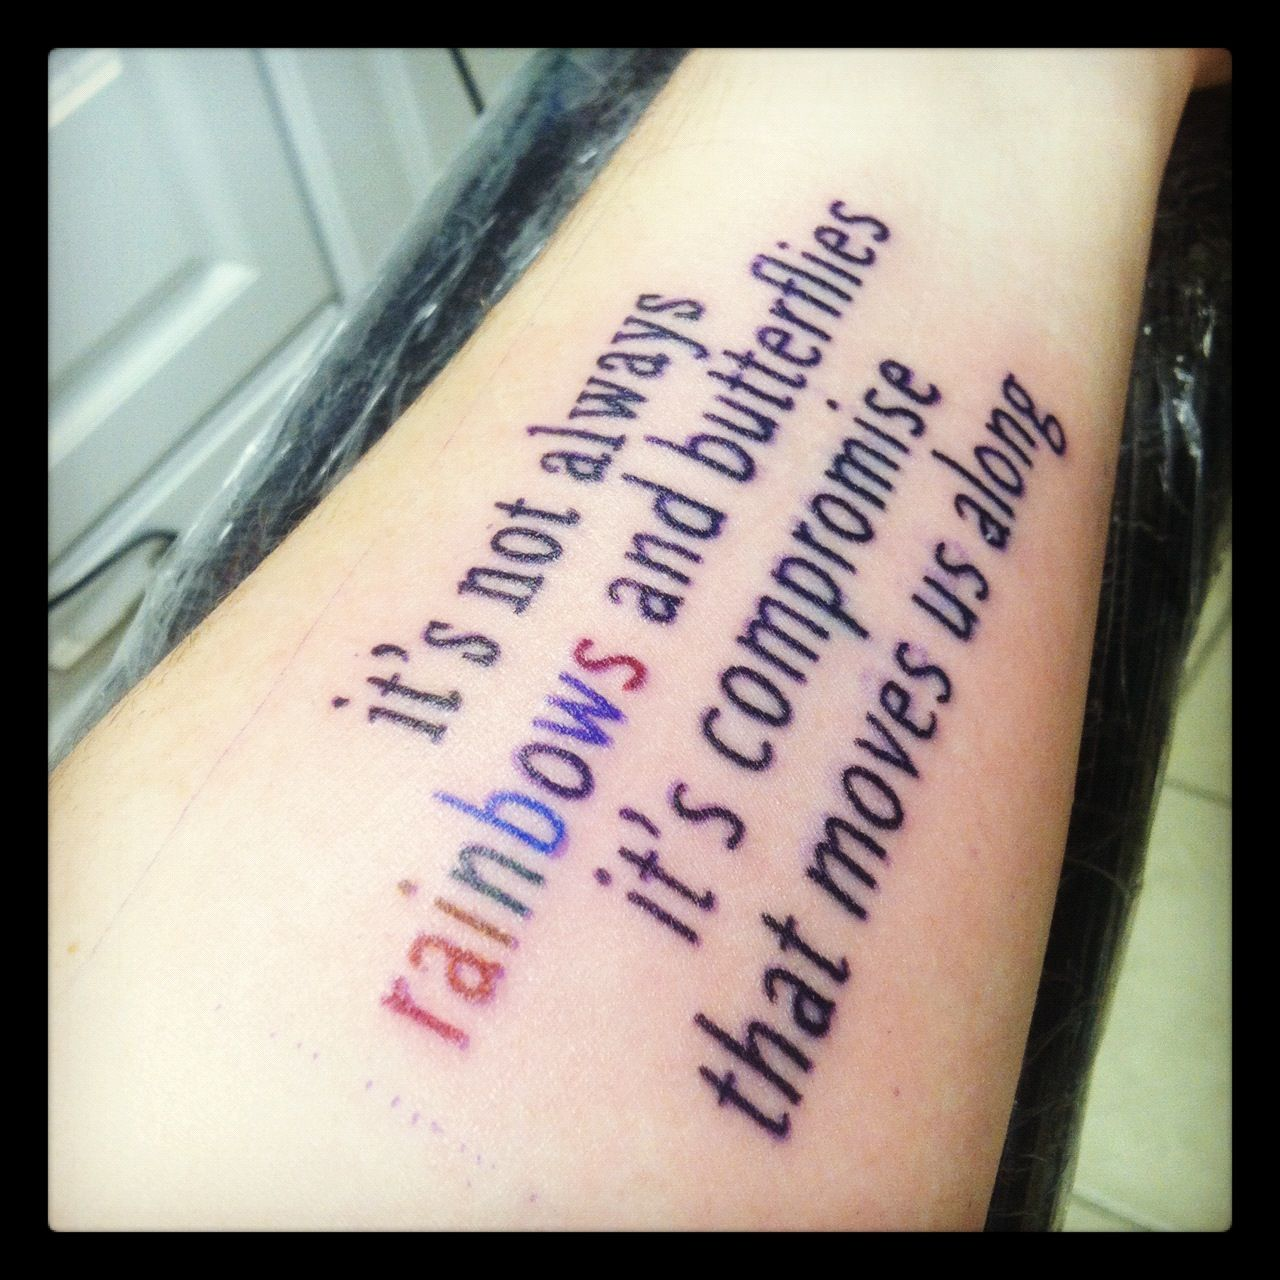 100 Tattoos Quotes With Meaningful Sayings You Ll Love: My New Tattoo. Maroon 5 Song Lyrics. :)